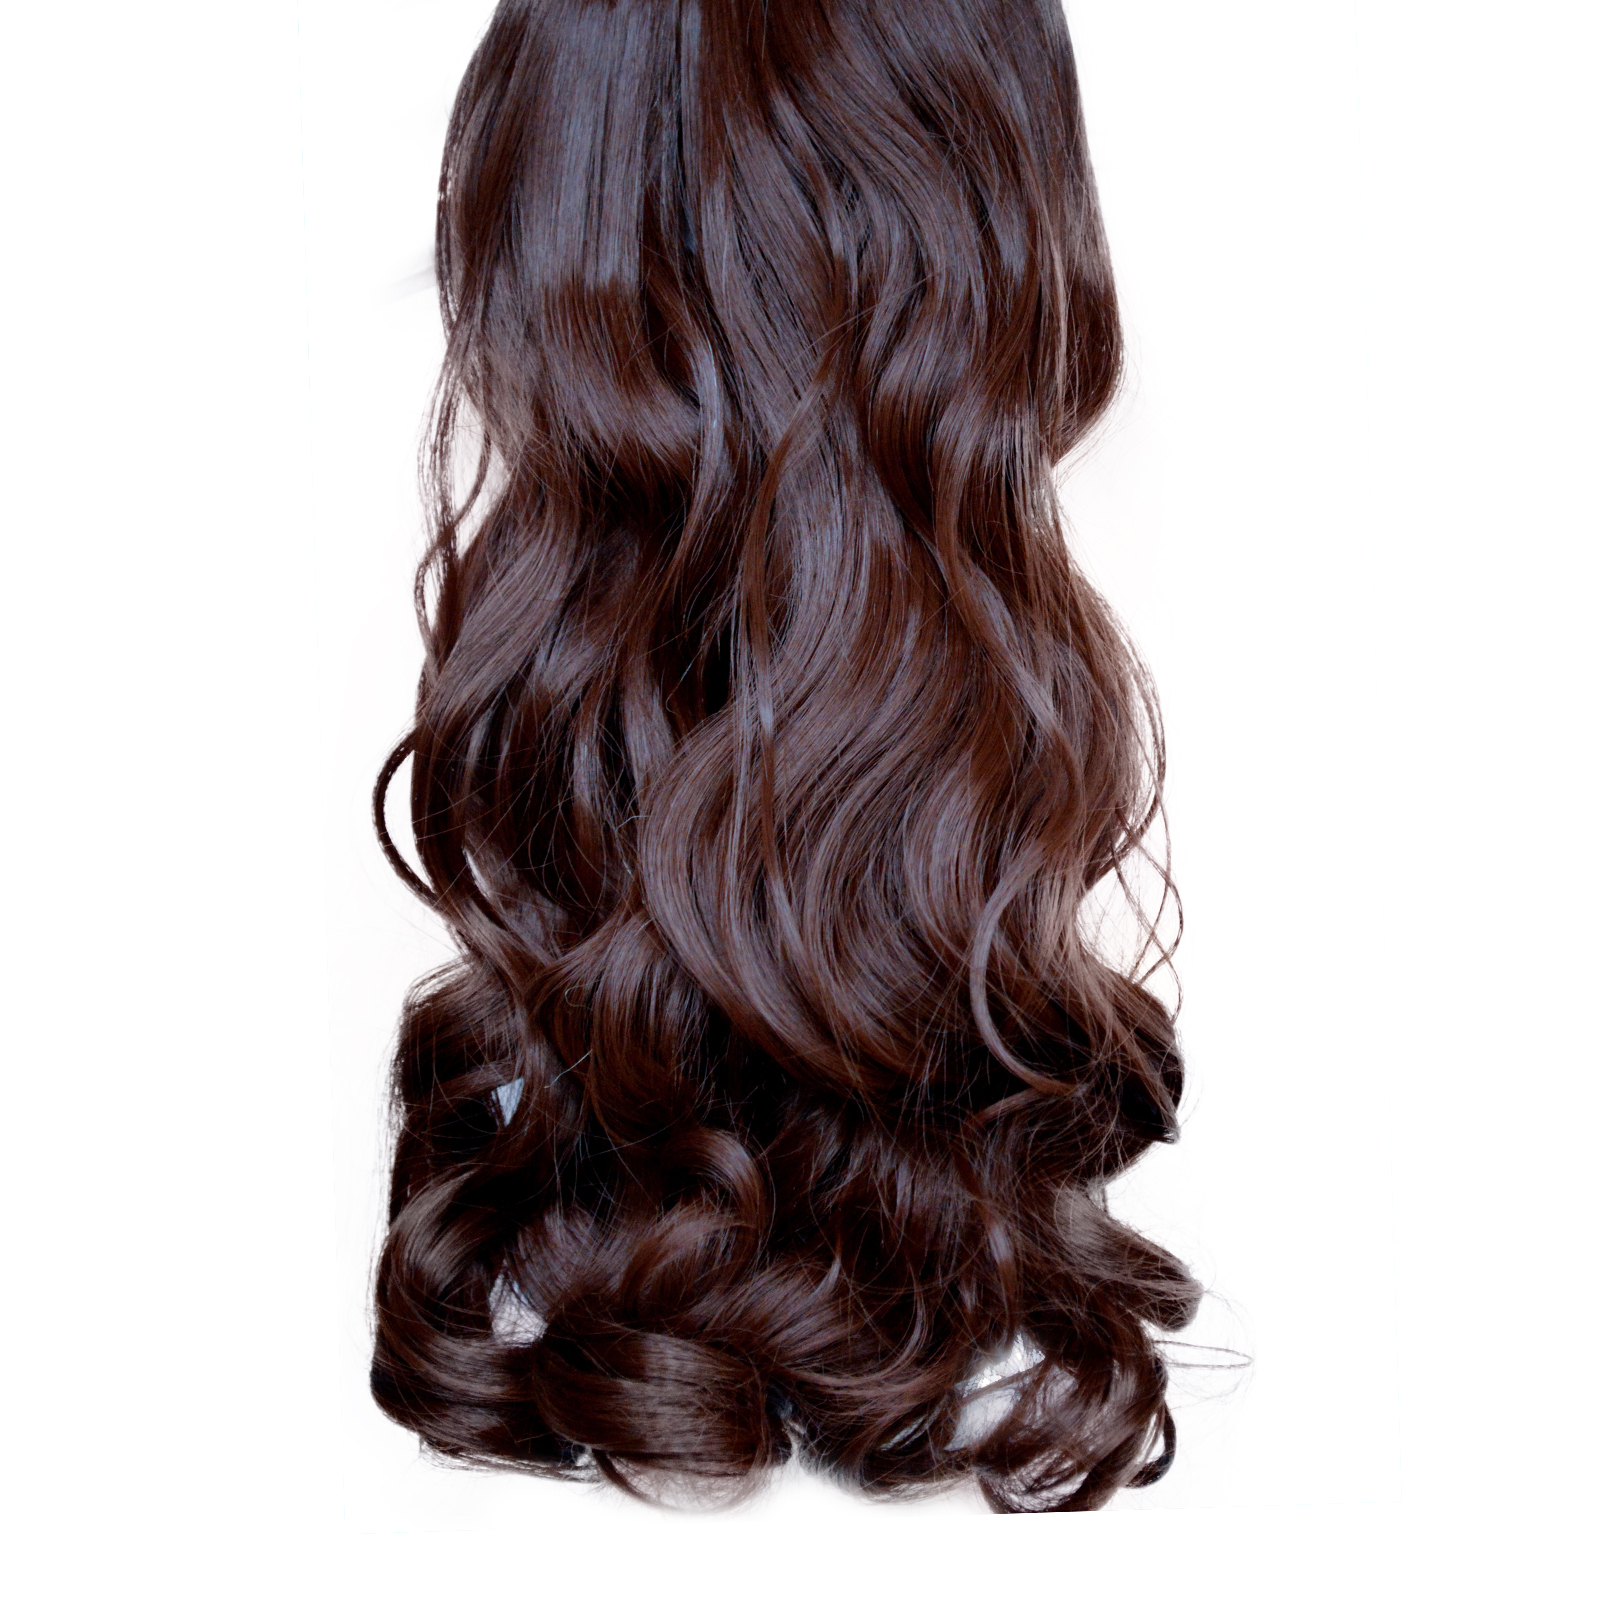 Full head clip in hair extensions curly wavy 2022 choose any full head clip in hair extensions curly wavy pmusecretfo Choice Image